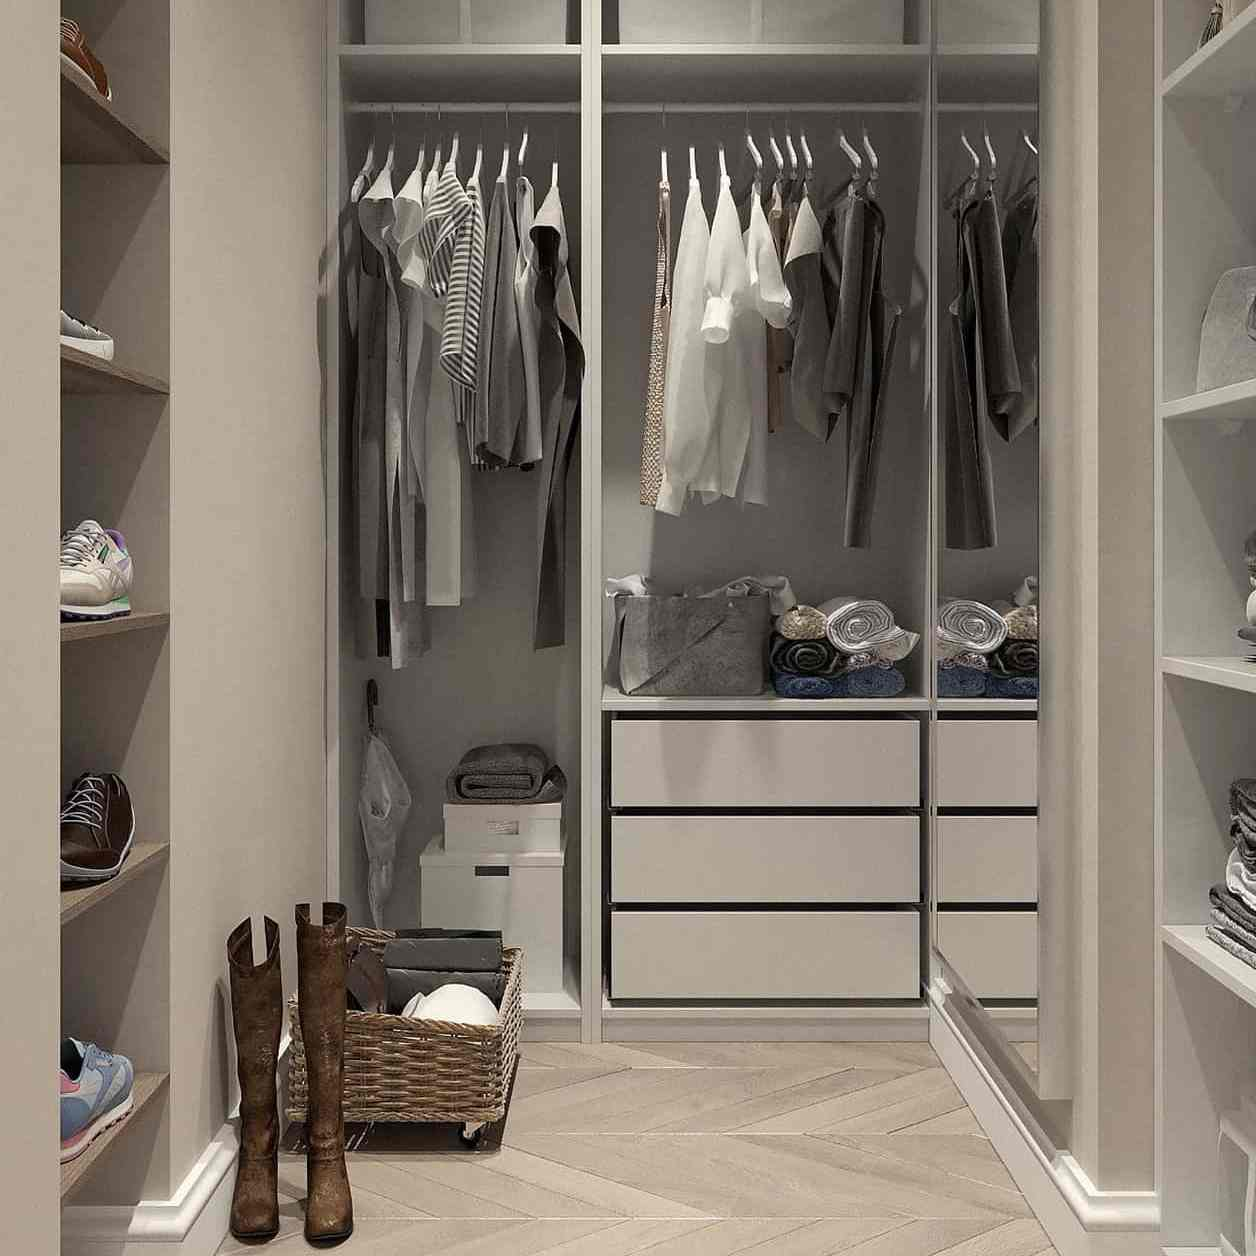 a wardrobe area in retail store